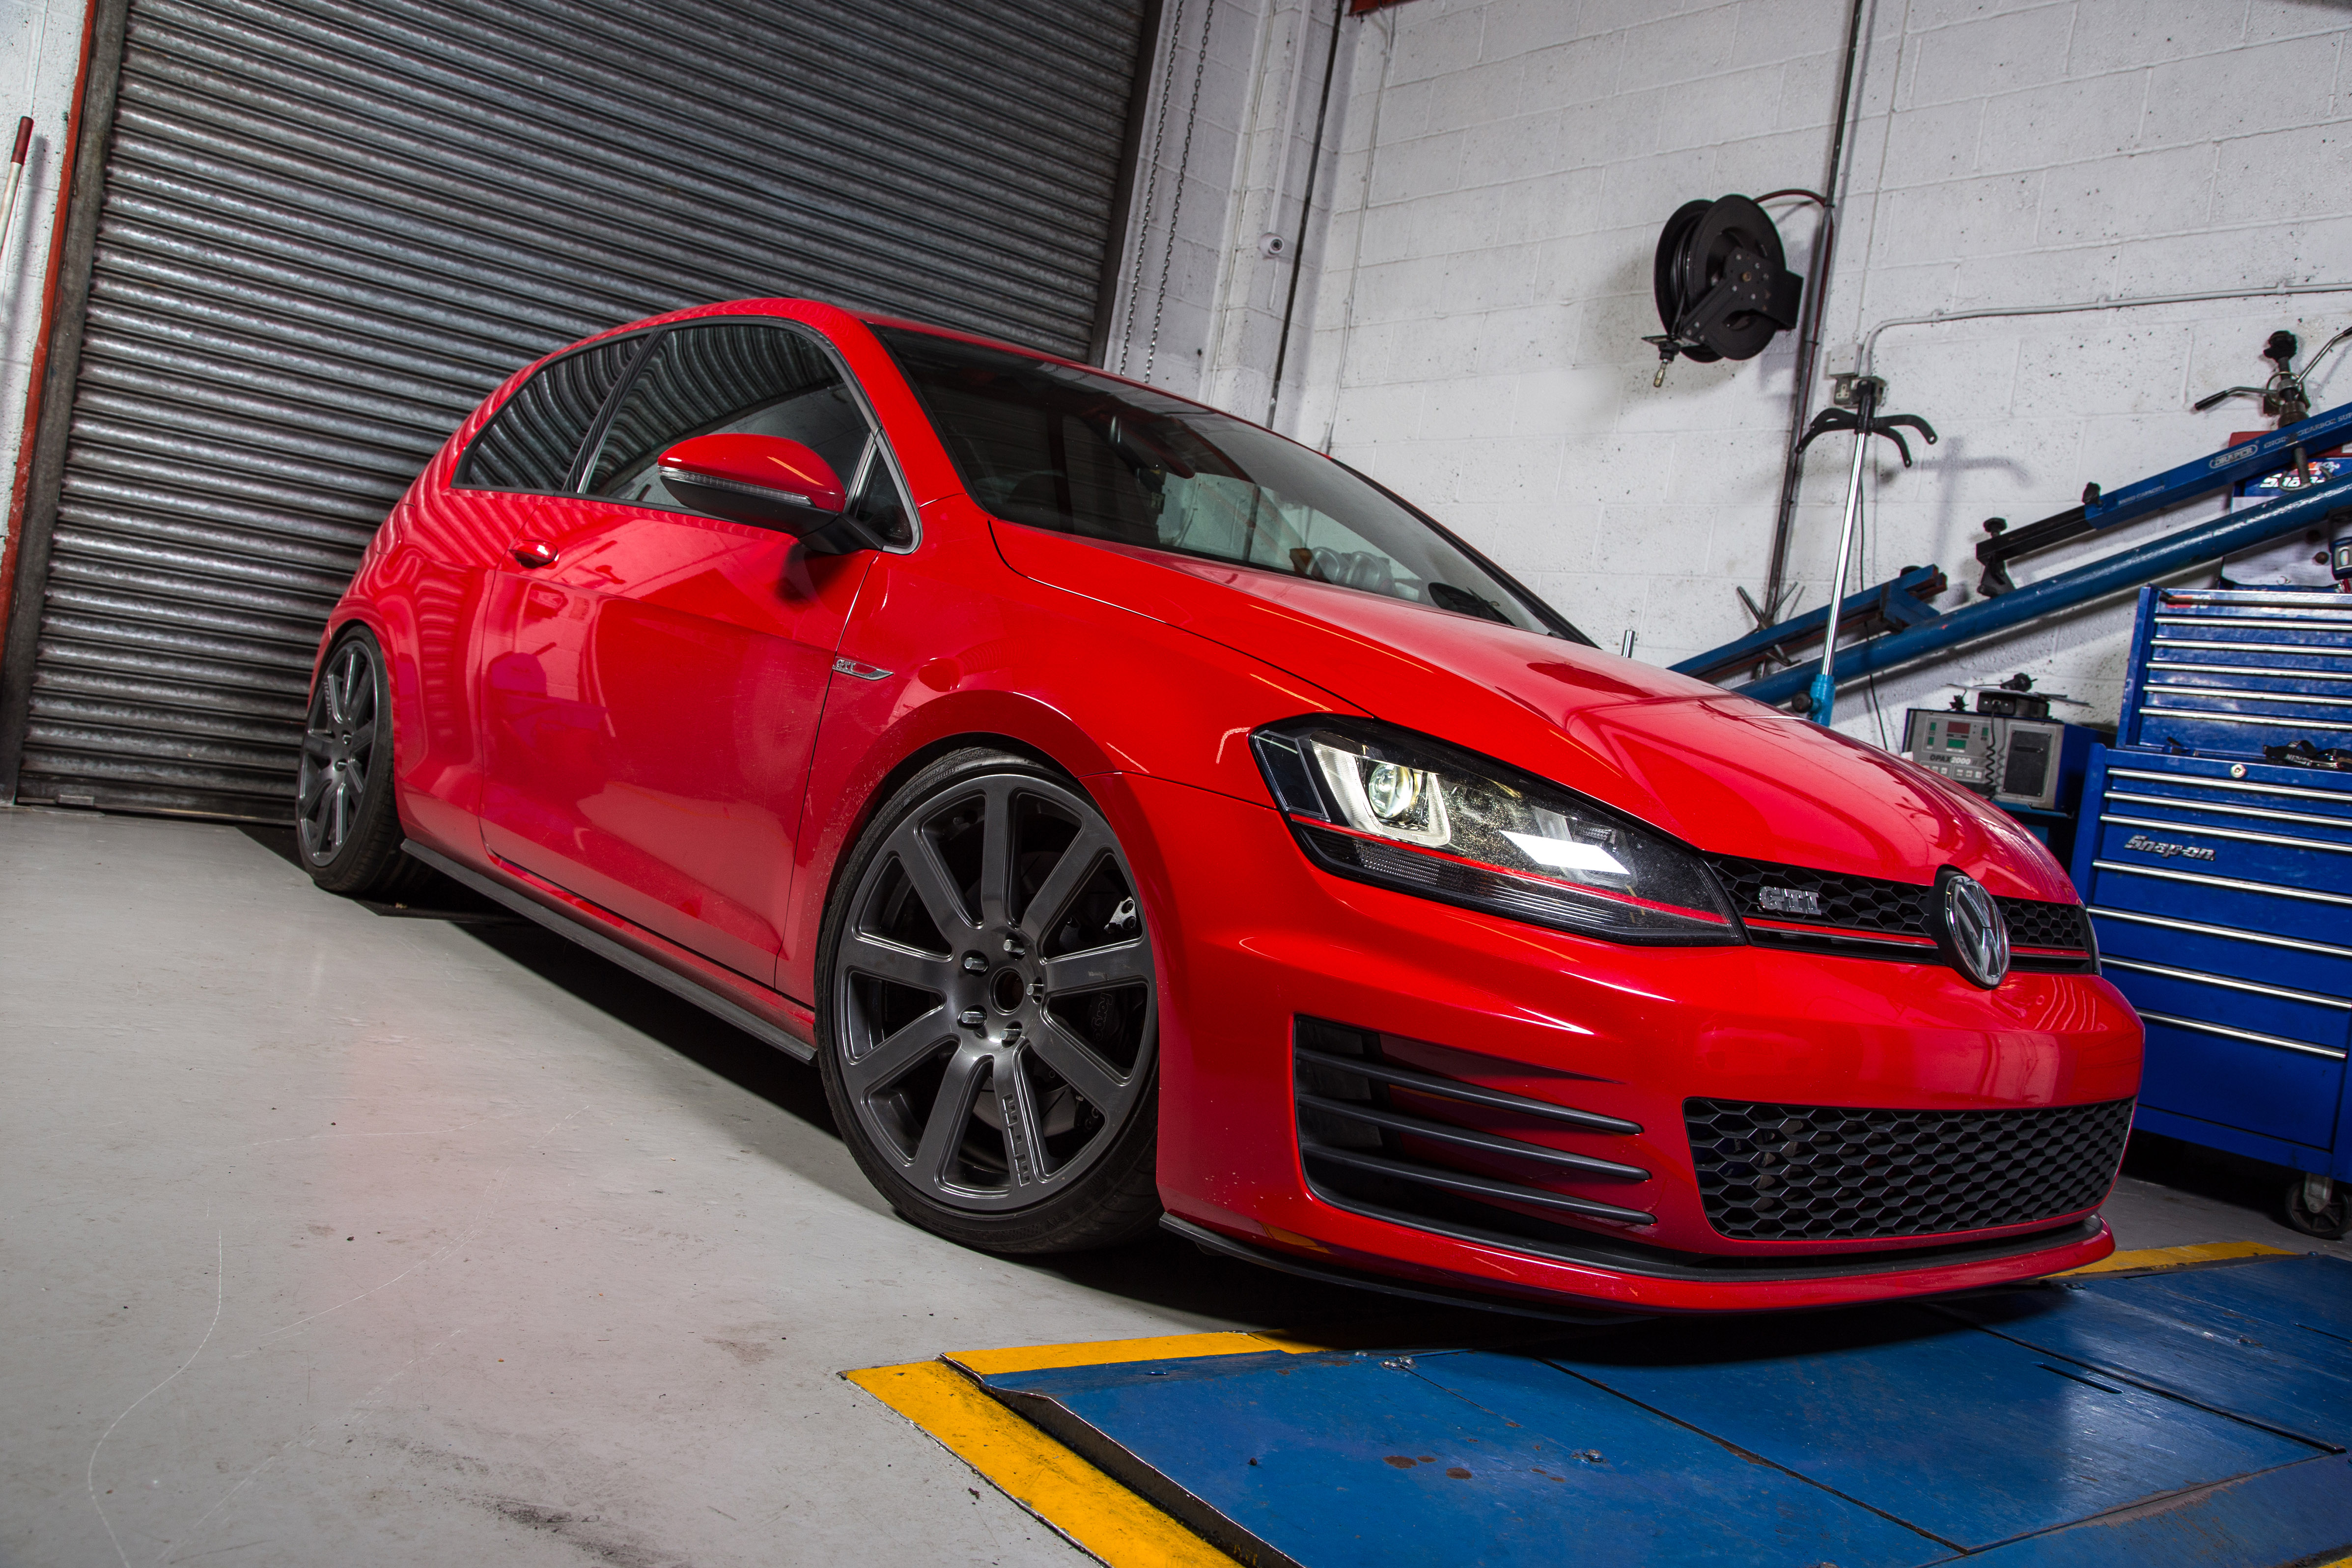 St Suspensions Engineered By Kw Mk7 Golf Gti St Xta Coilover Kit Kw Automotive Blog